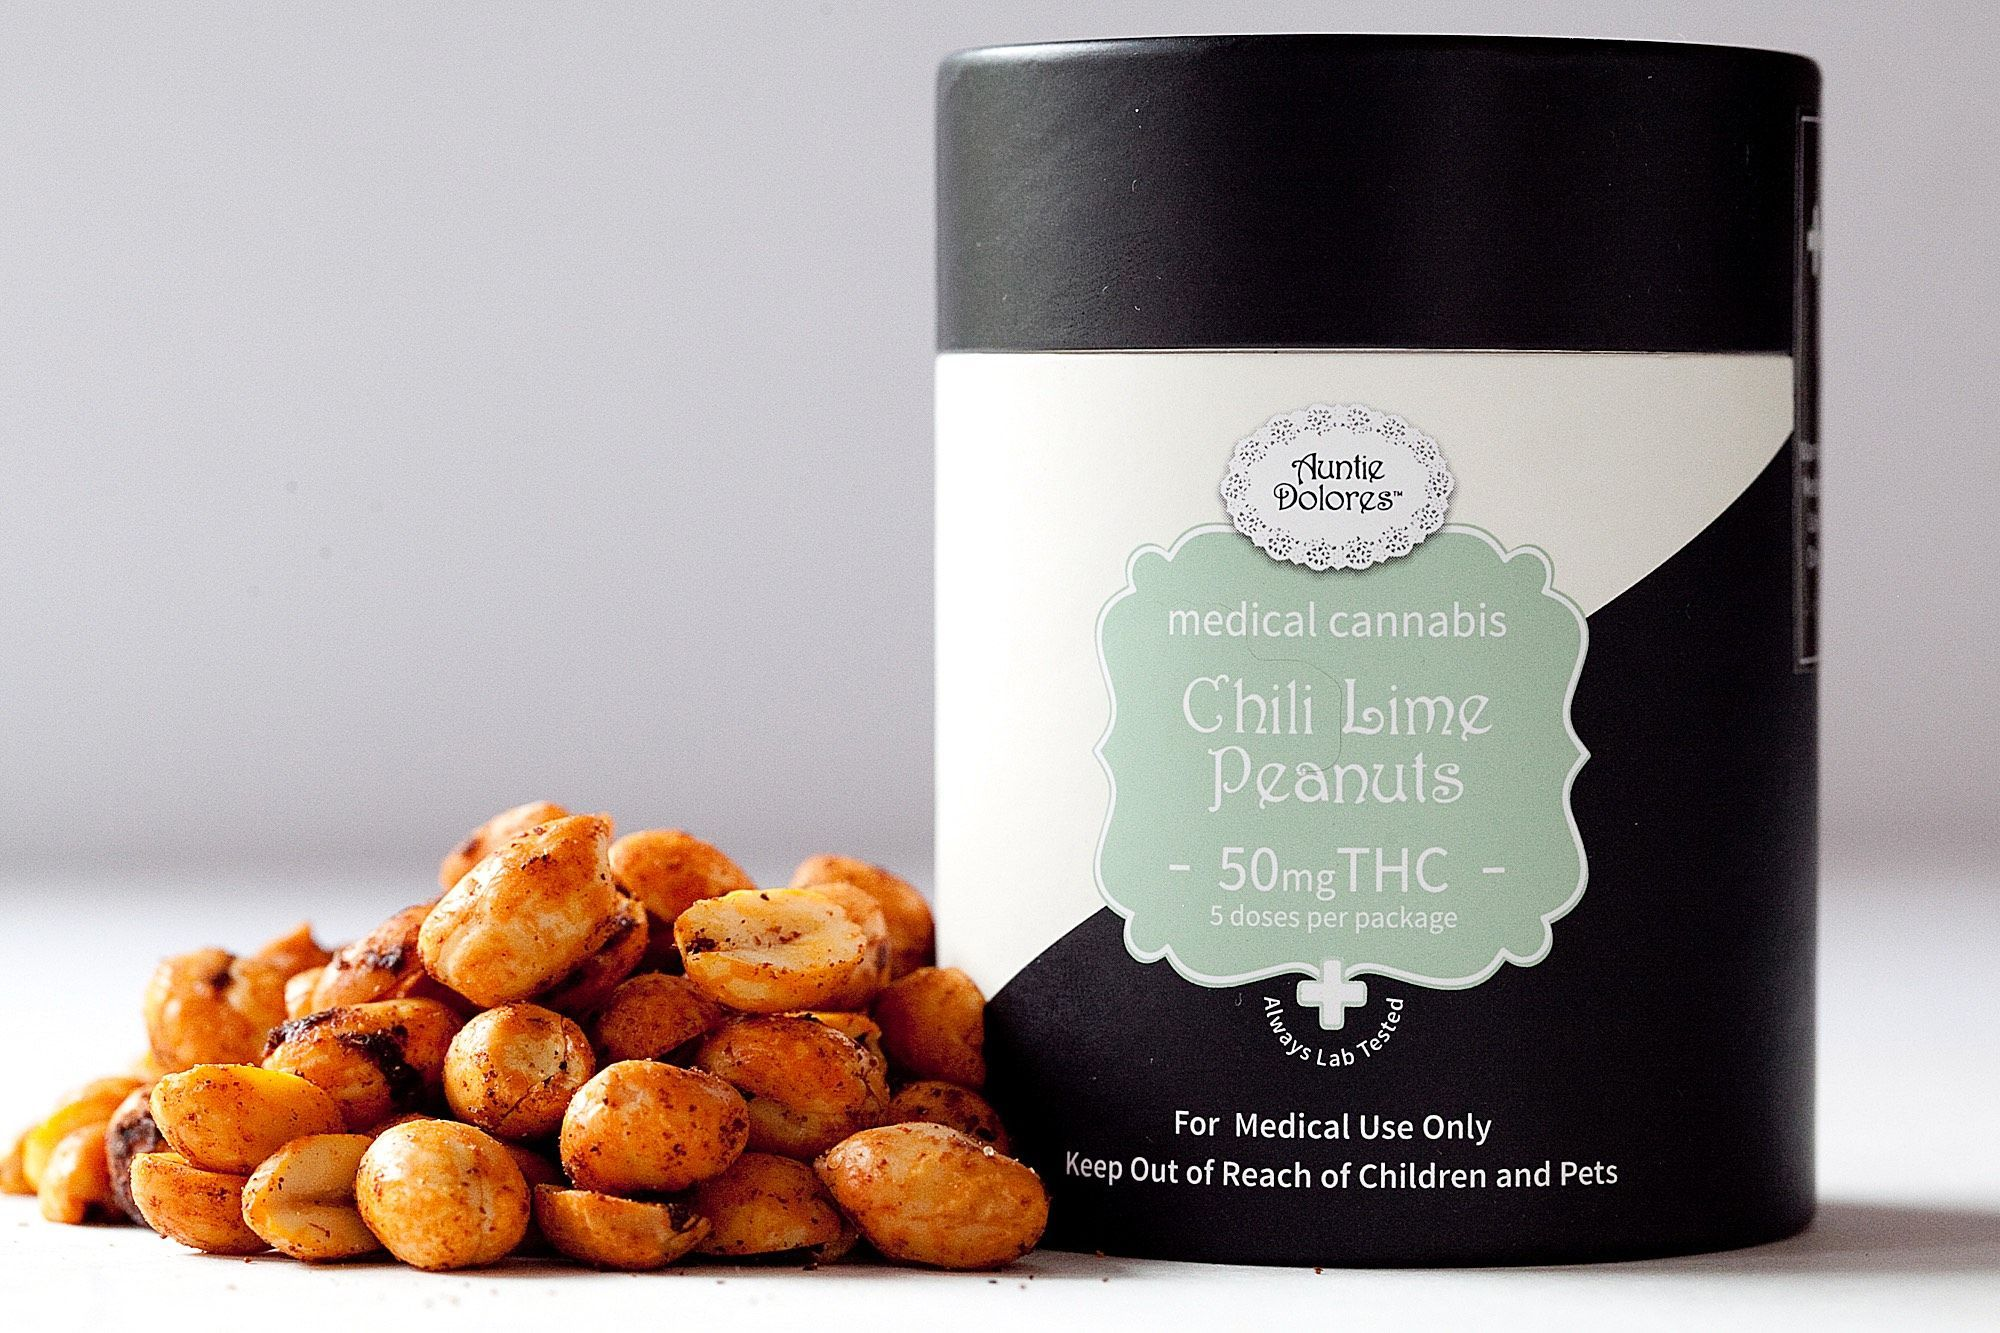 Chili Lime Peanuts Auntie Dolores